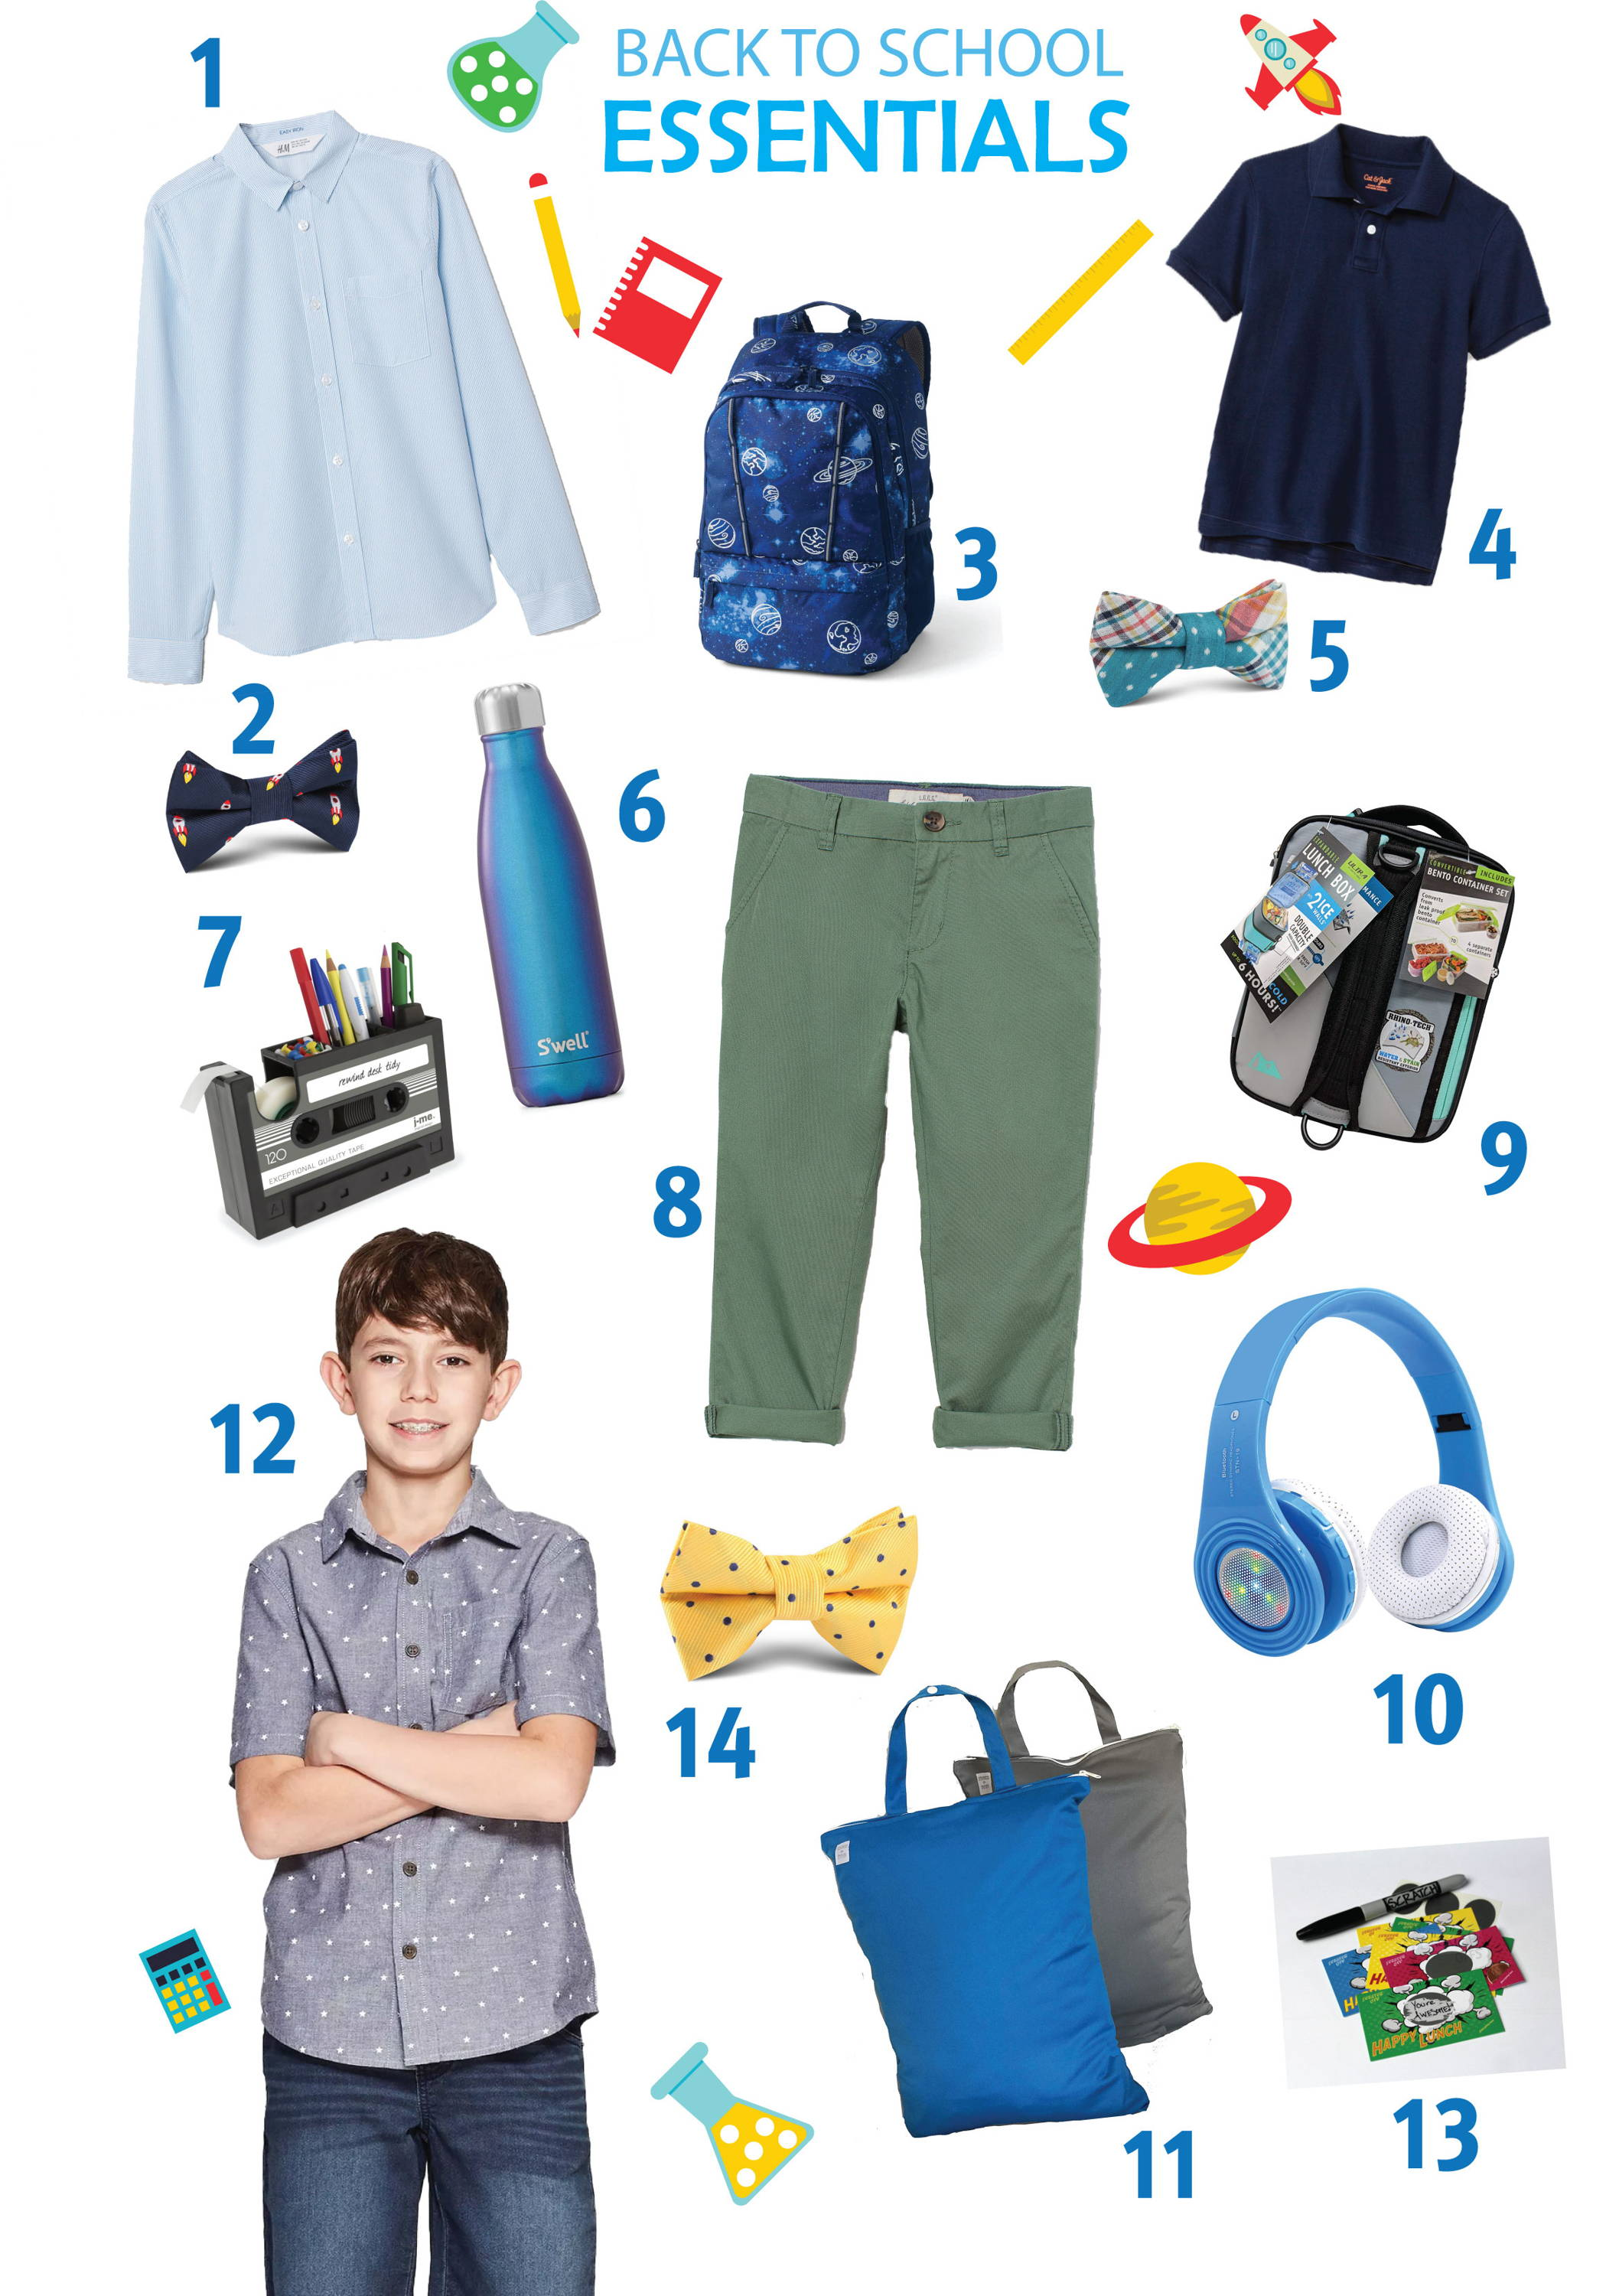 Back to school essential items including kids bow ties from H-Bomb Ties